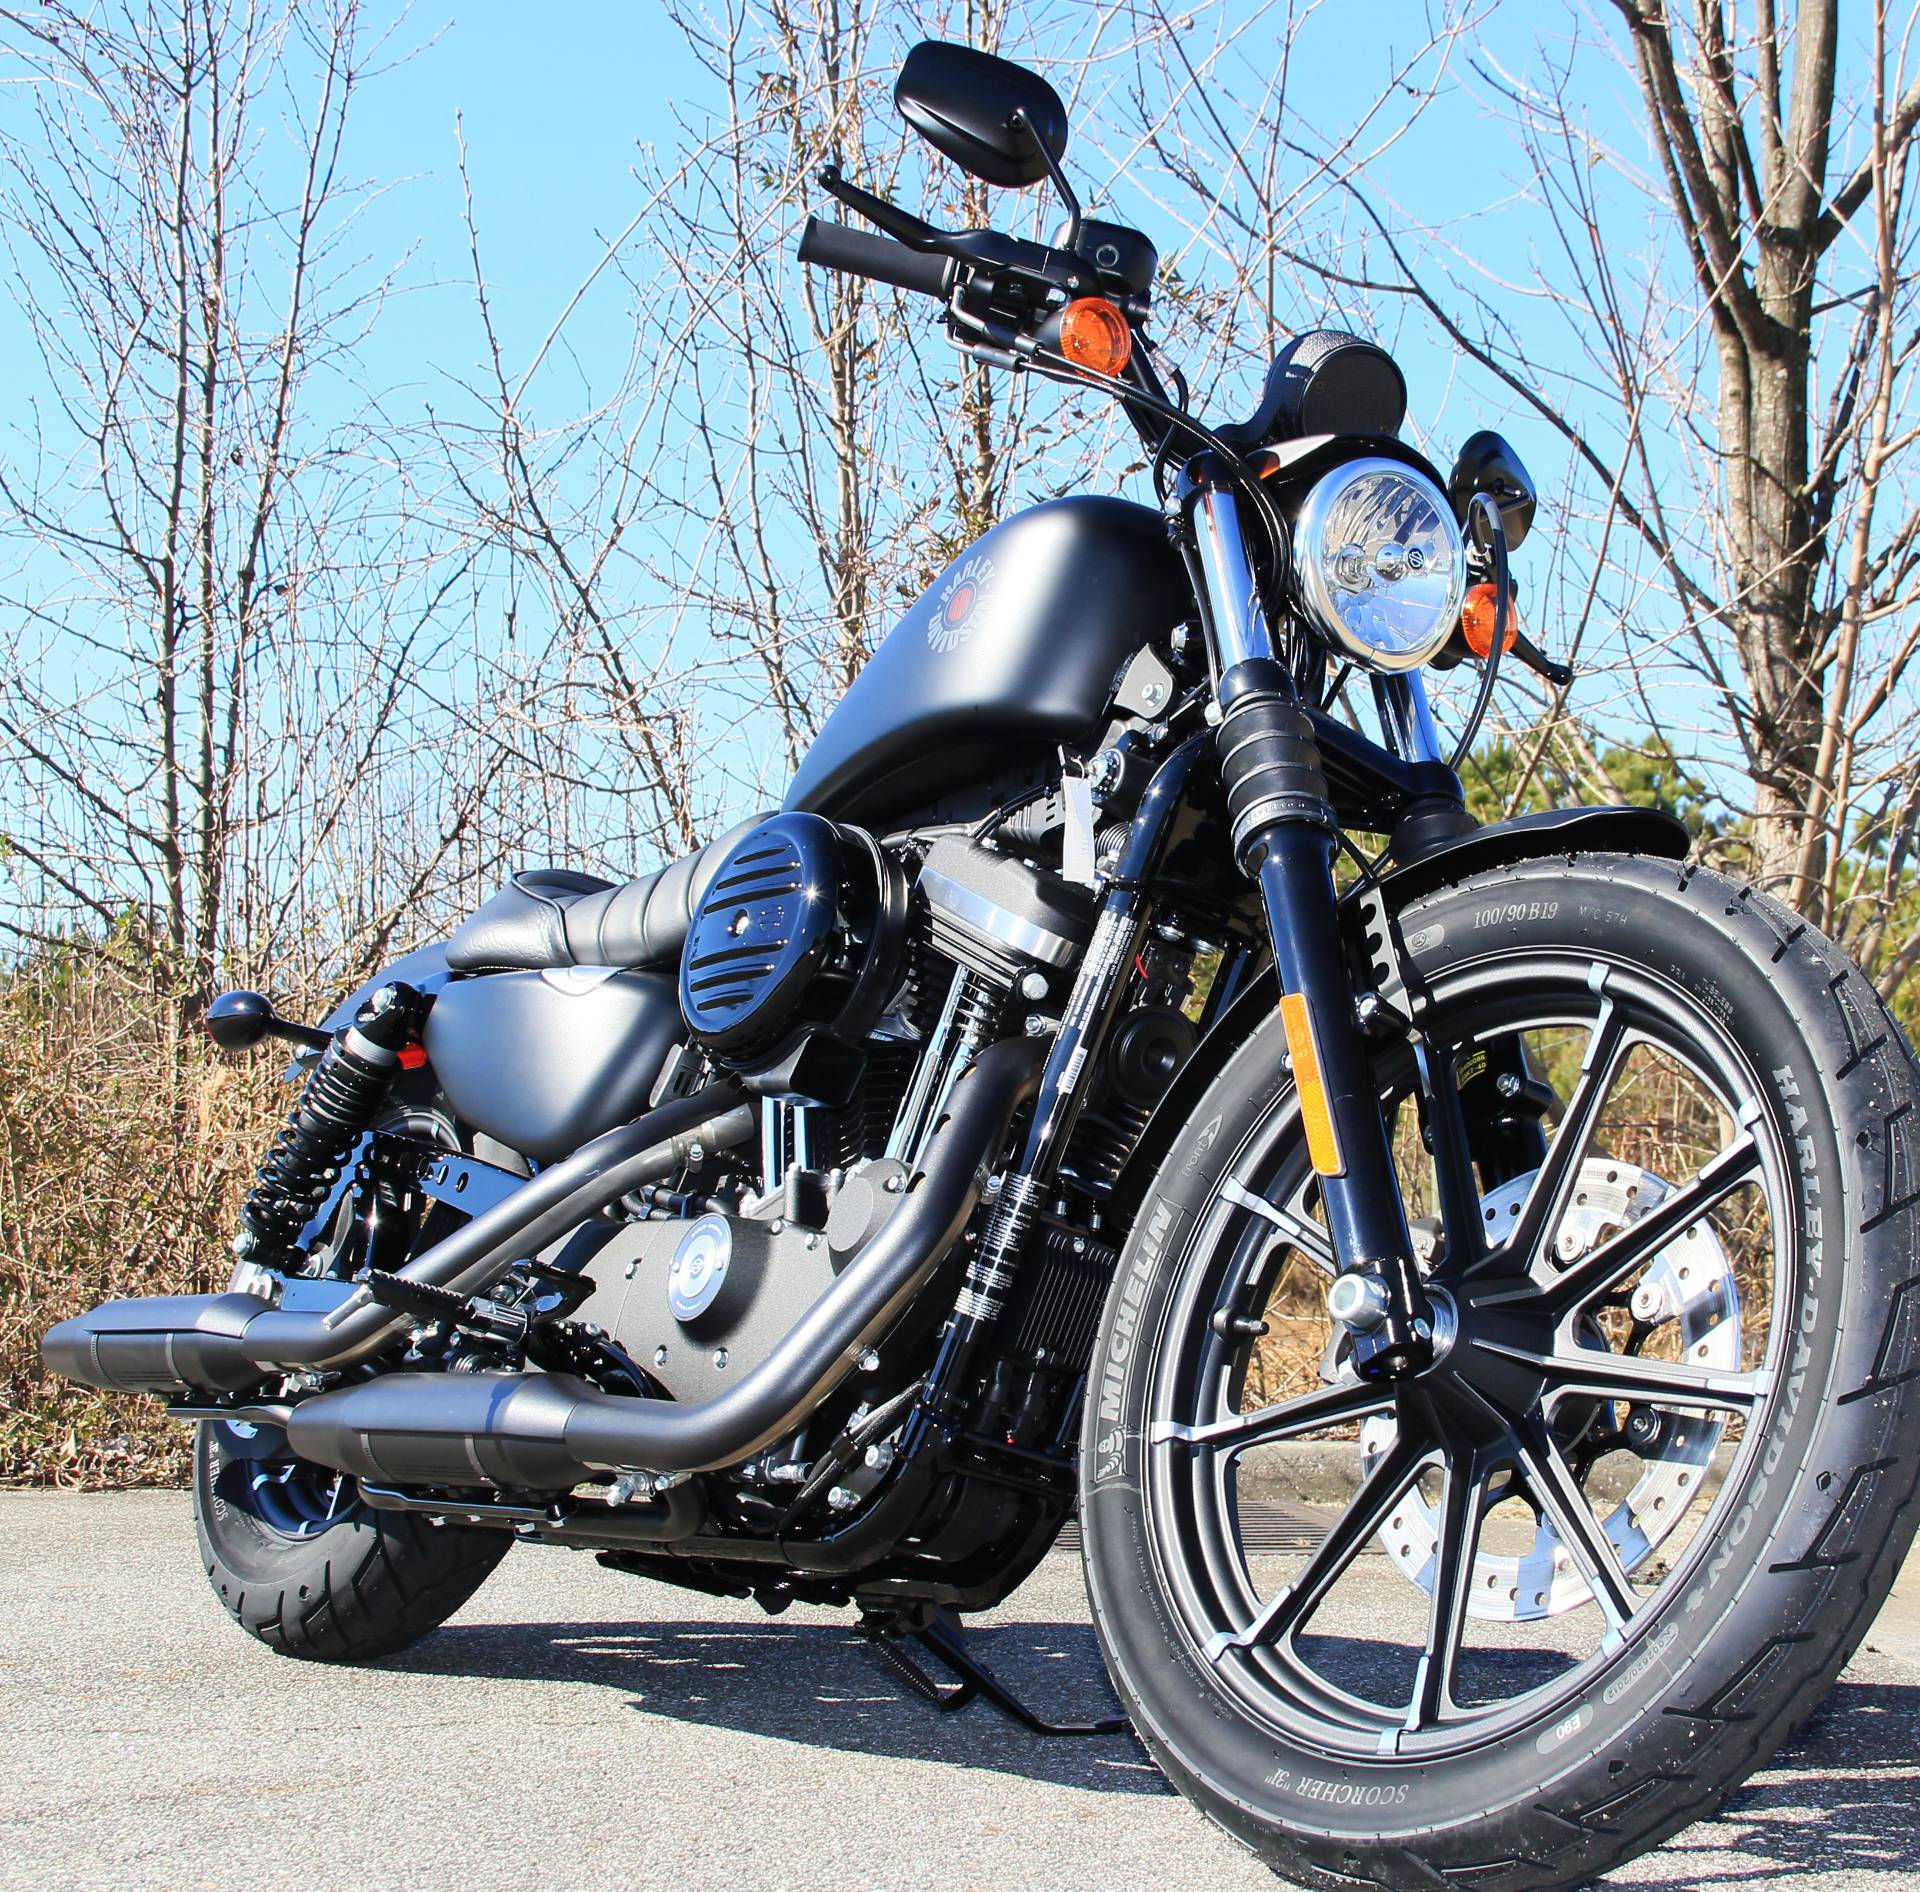 2020 Harley-Davidson Iron 883 in Cartersville, Georgia - Photo 3